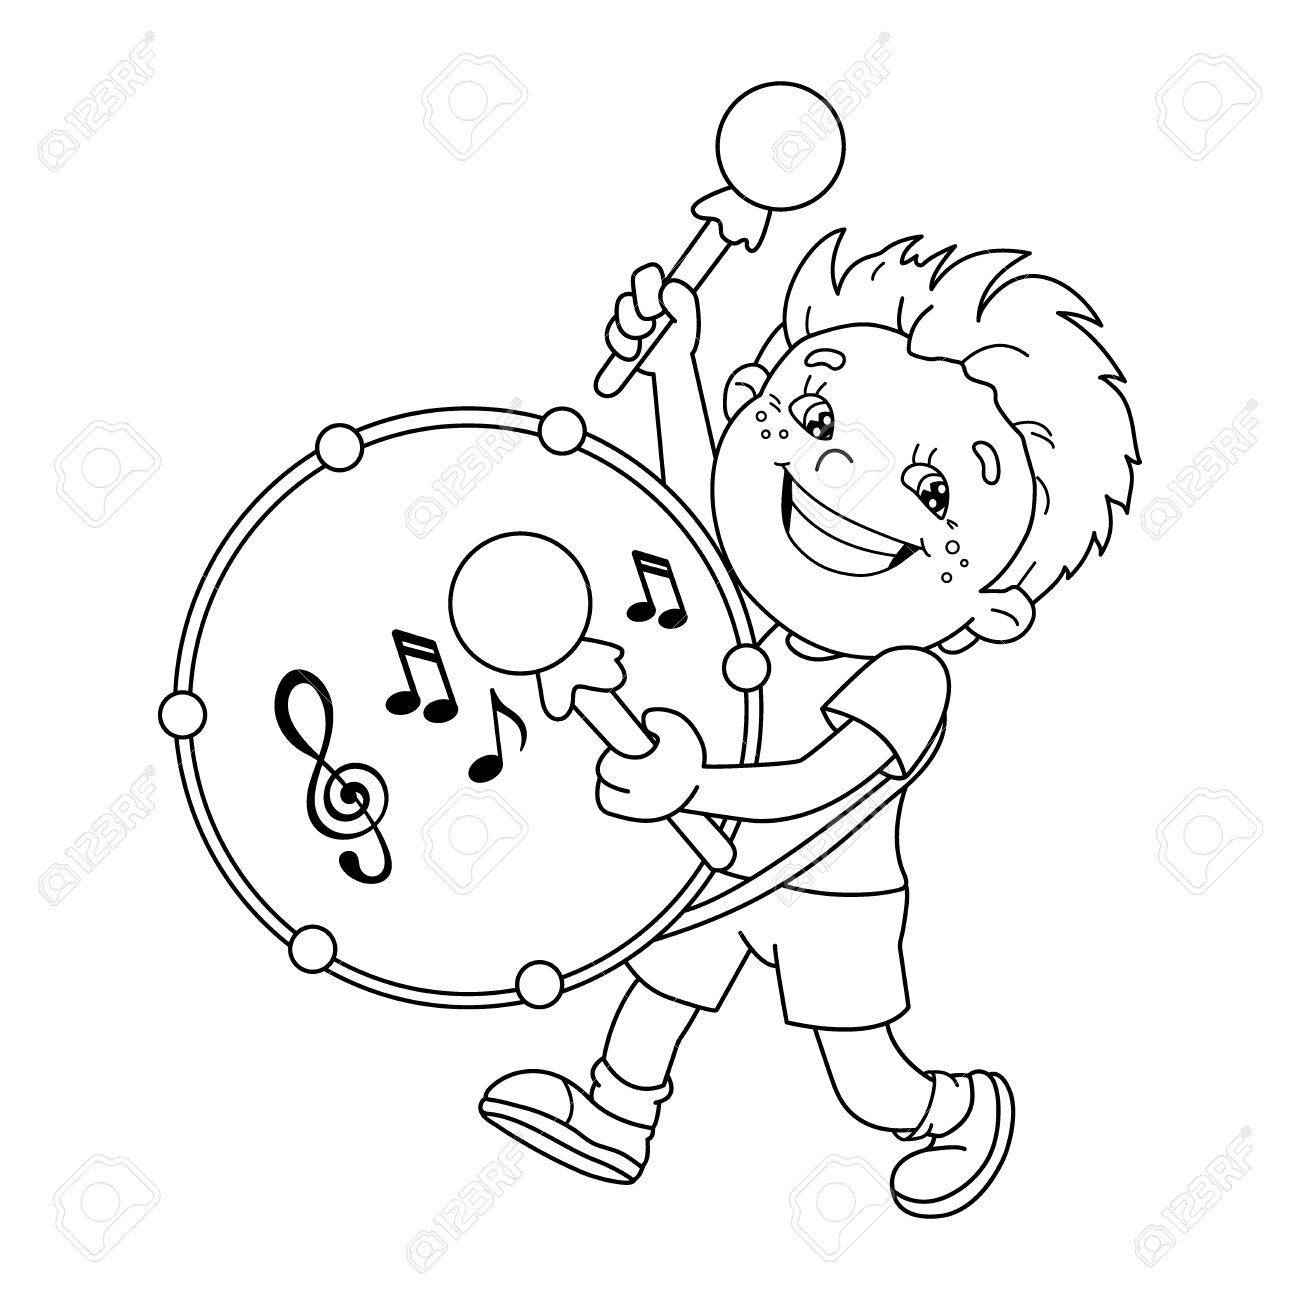 Coloring Page Outline Of Cartoon Boy Playing The Drum. Musical ...